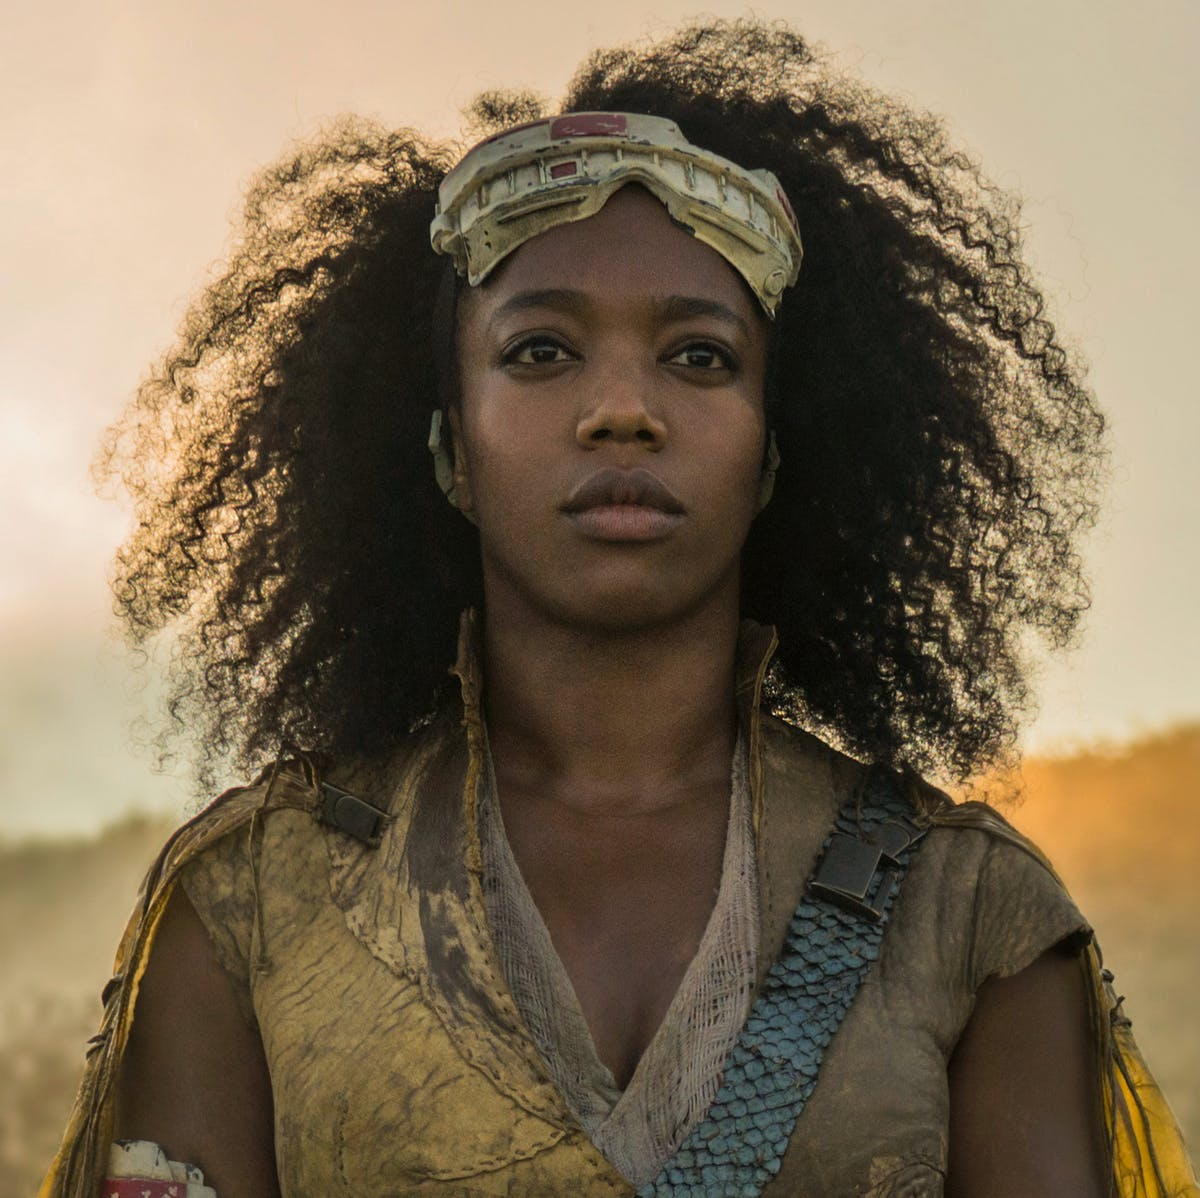 'Star Wars 9' spoilers: Who is Jannah? Naomi Ackie on her mysterious role